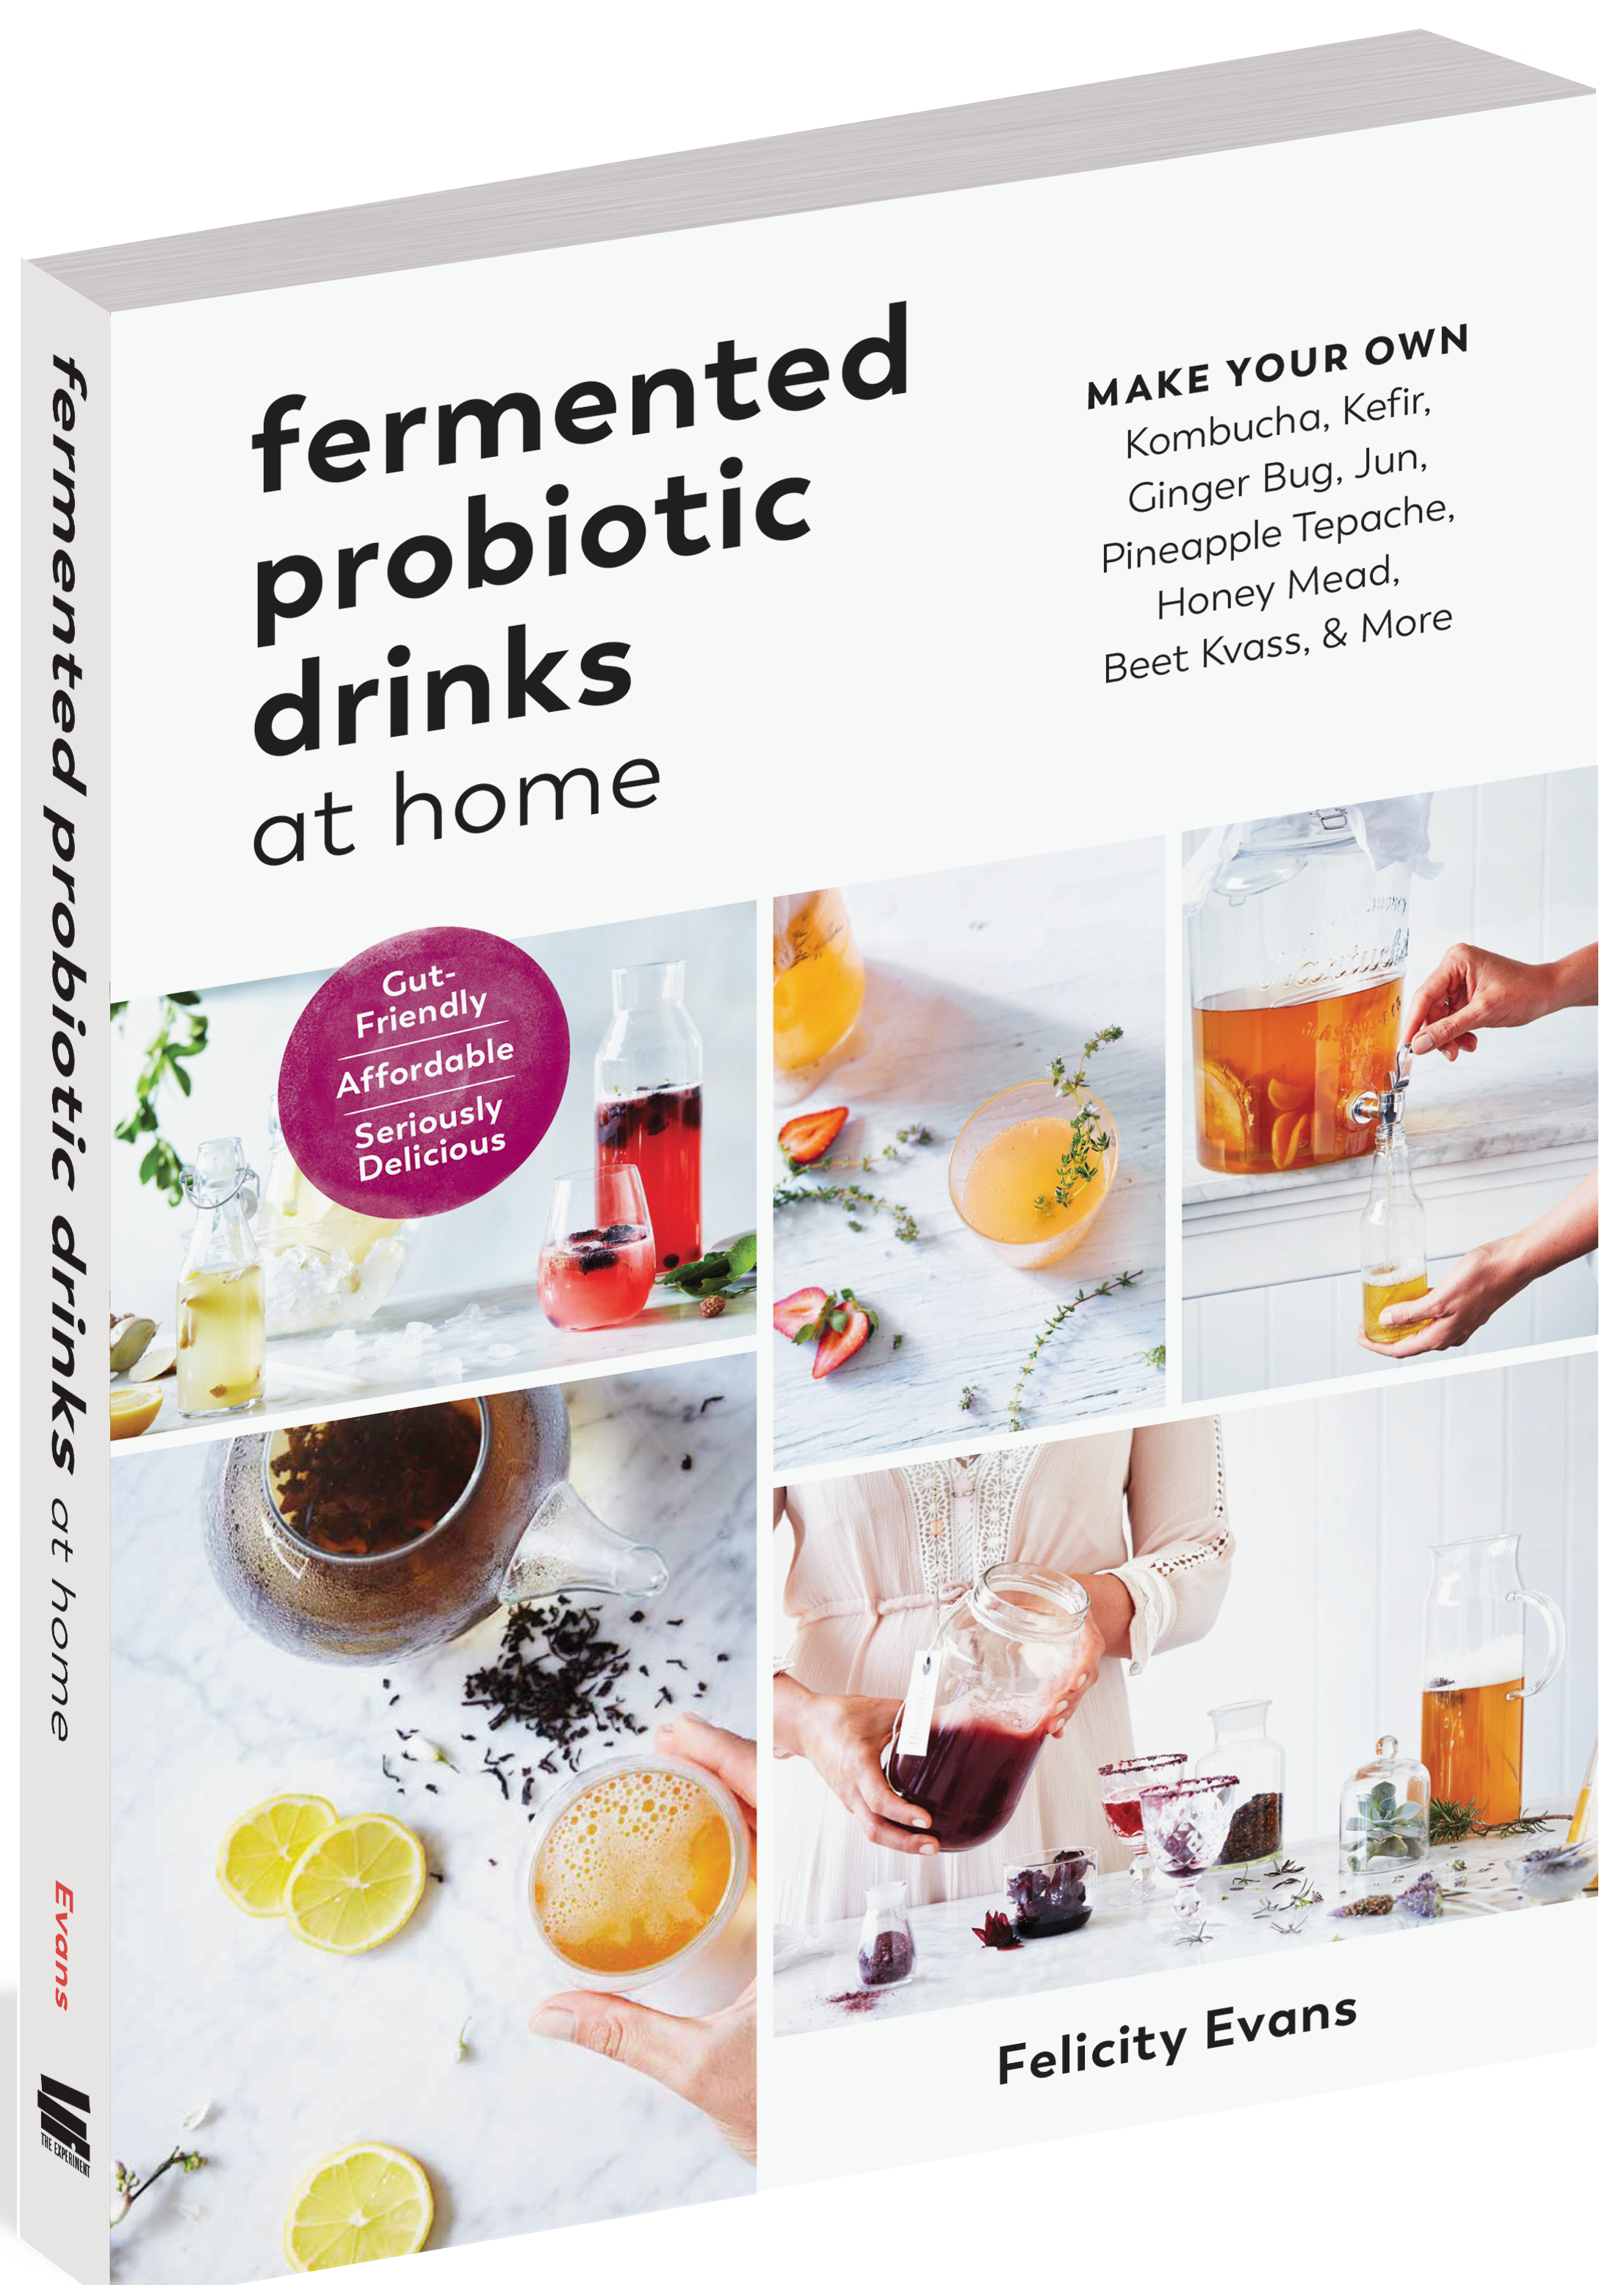 We're so pleased to have just published Fermented Probiotic Drinks at Home:  Make Your Own Kombucha, Kefir, Ginger Bug, Jun, Pineapple Tepache, Honey  Mead, ...